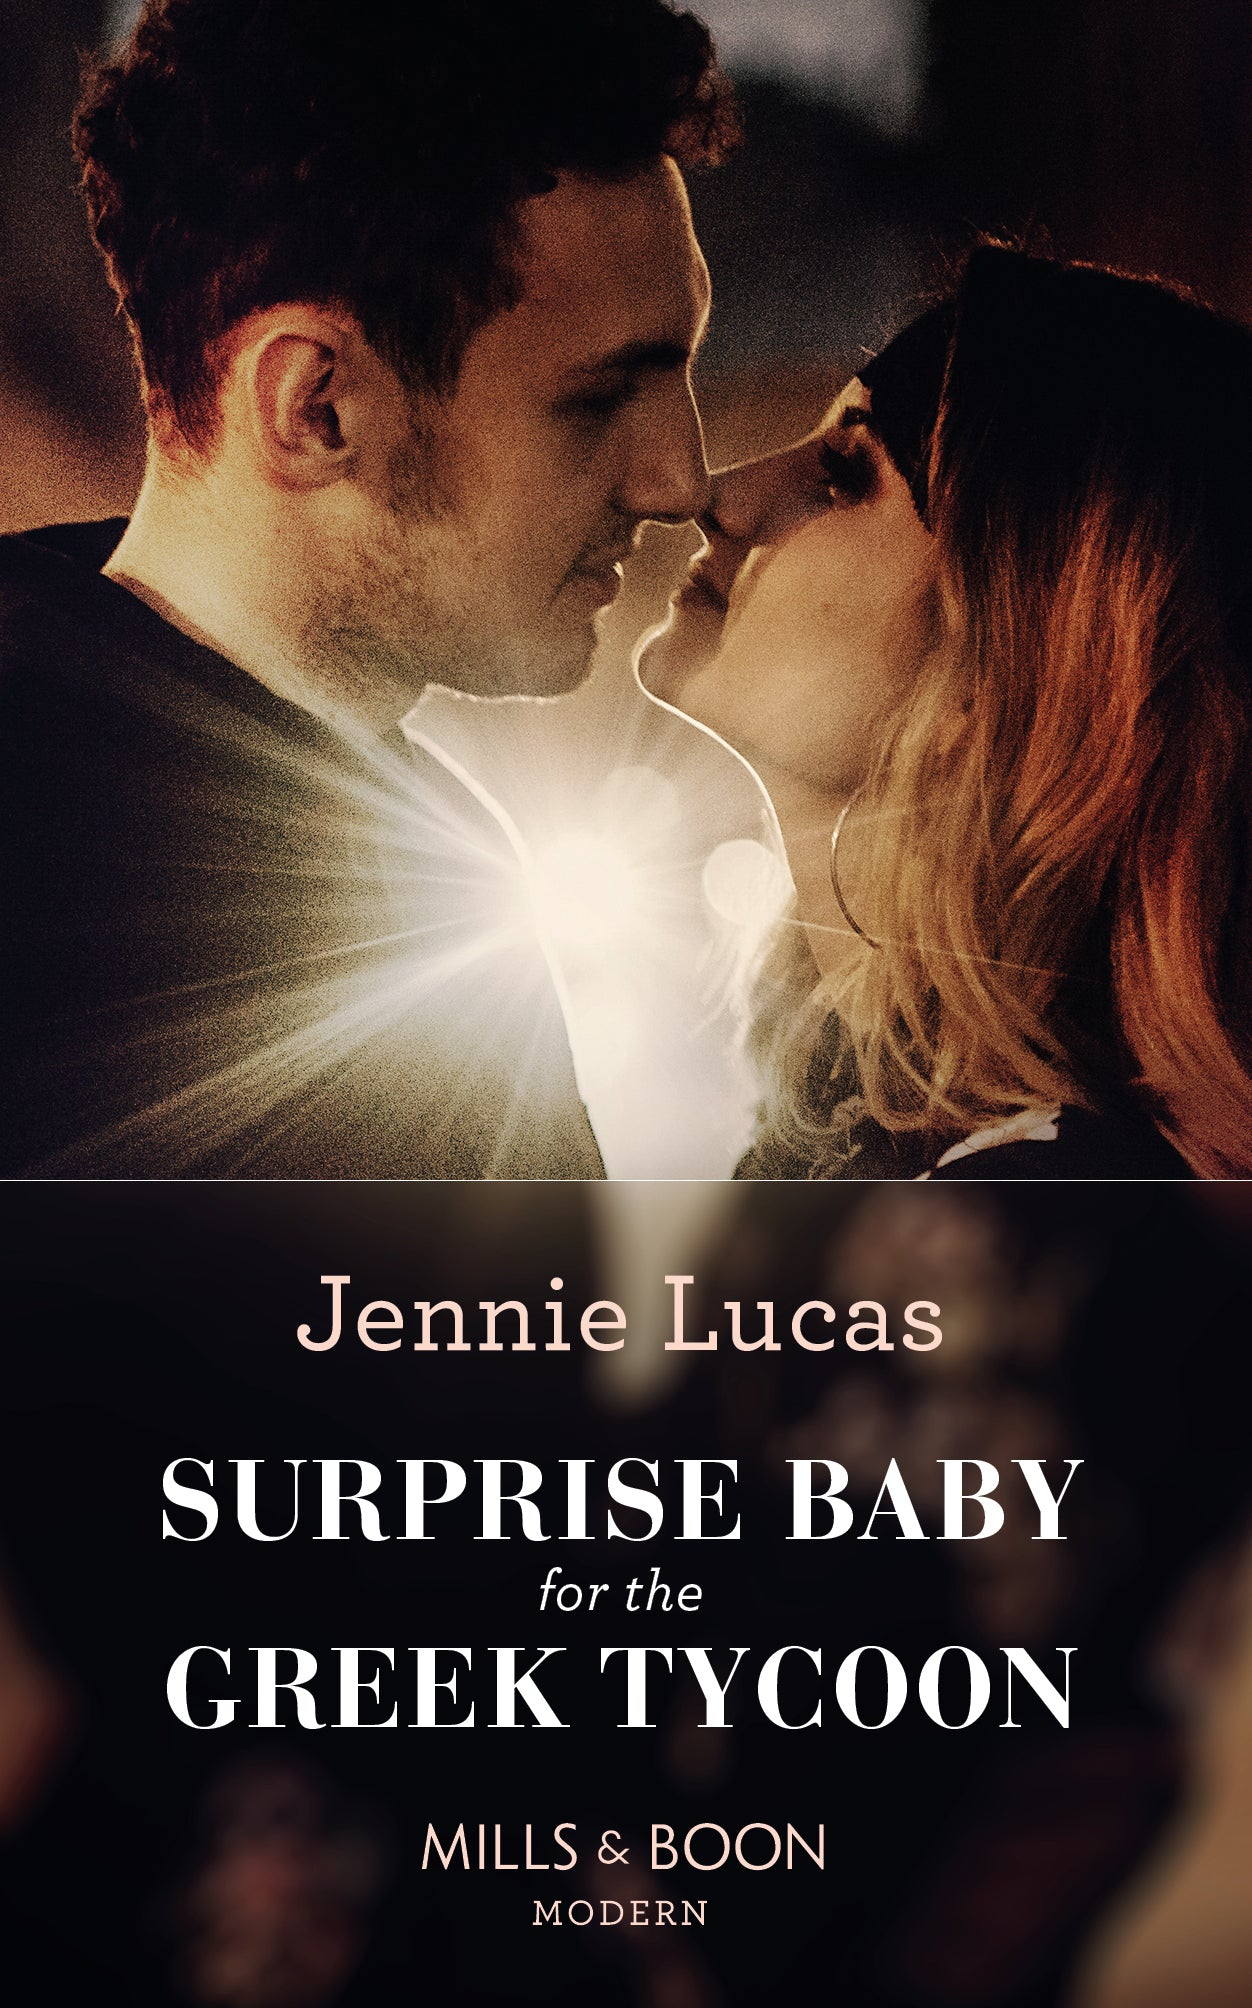 Surprise Baby for the Greek Tycoon - Chapter 16 – Mills